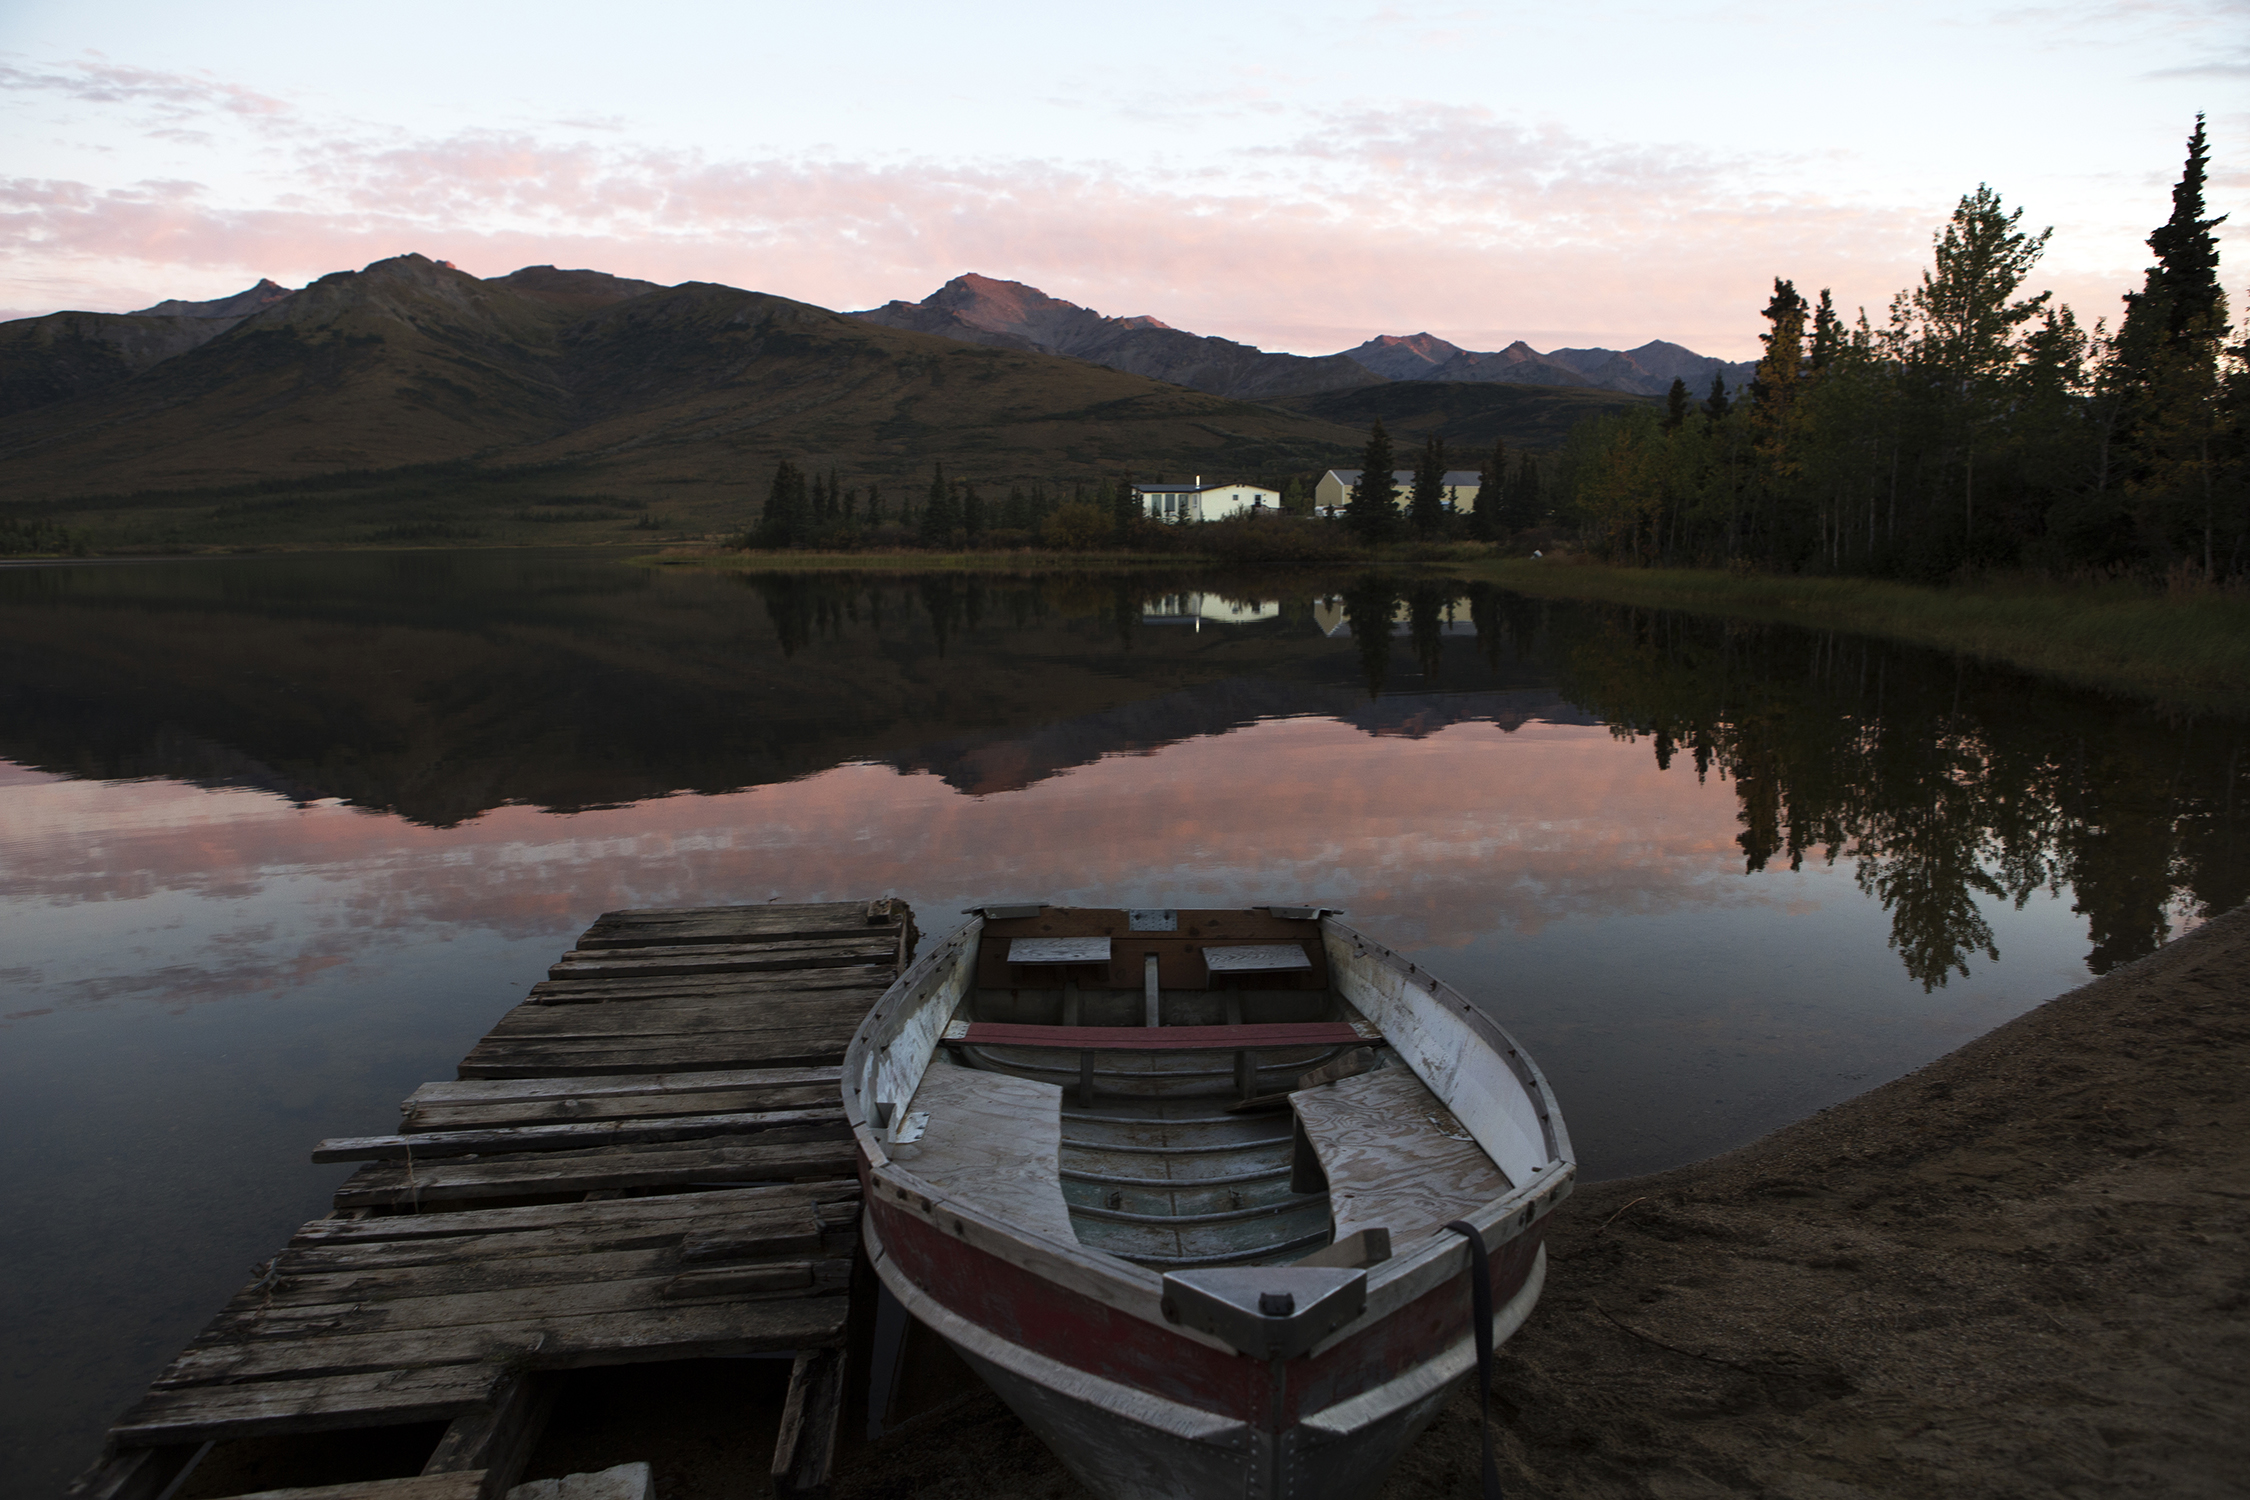 Situated 10 miles north of Denali National Park, Otto Lake is often the preferred base for visiting Denali where lodging and camping is available with spectacular views. © Photo by Gail Fisher